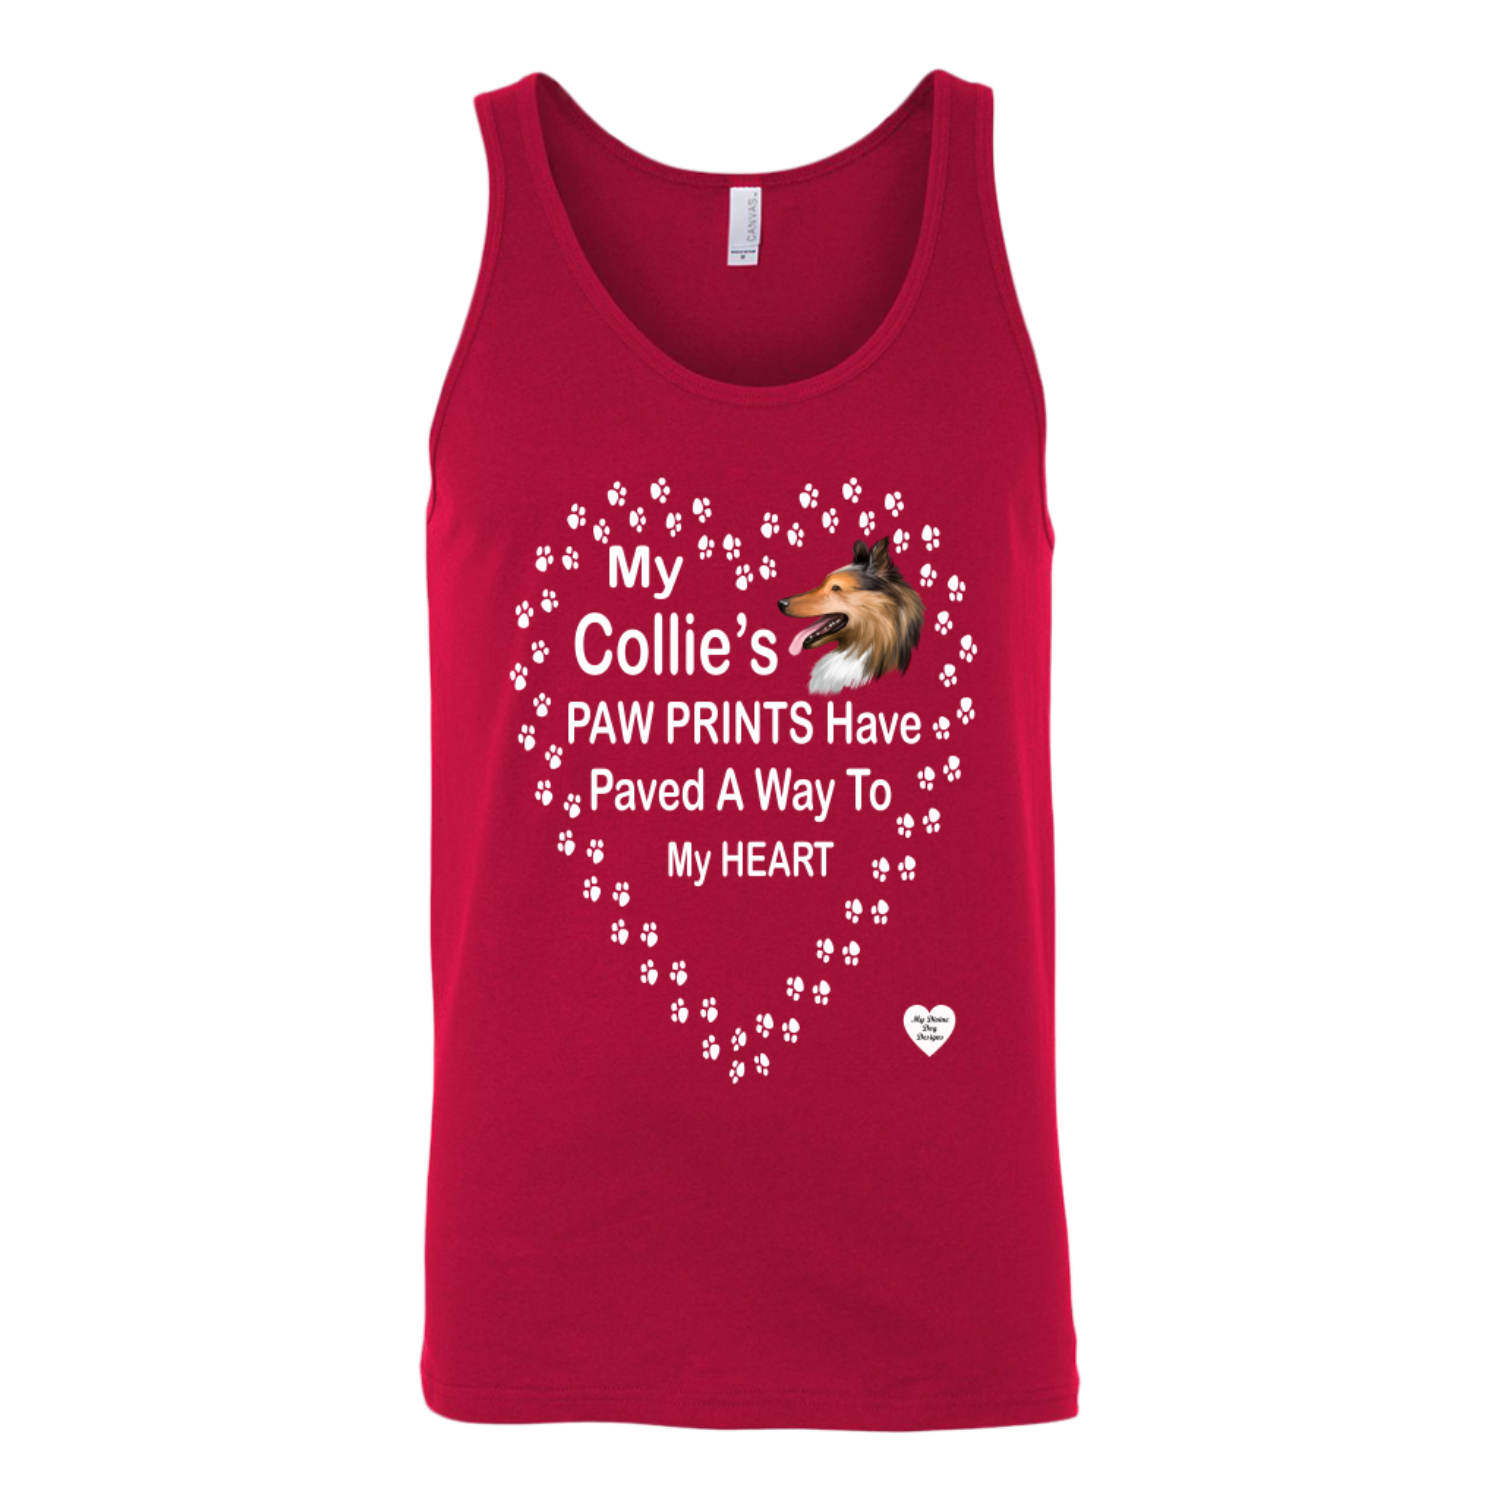 My Collie's Paw Prints Tank Top Red